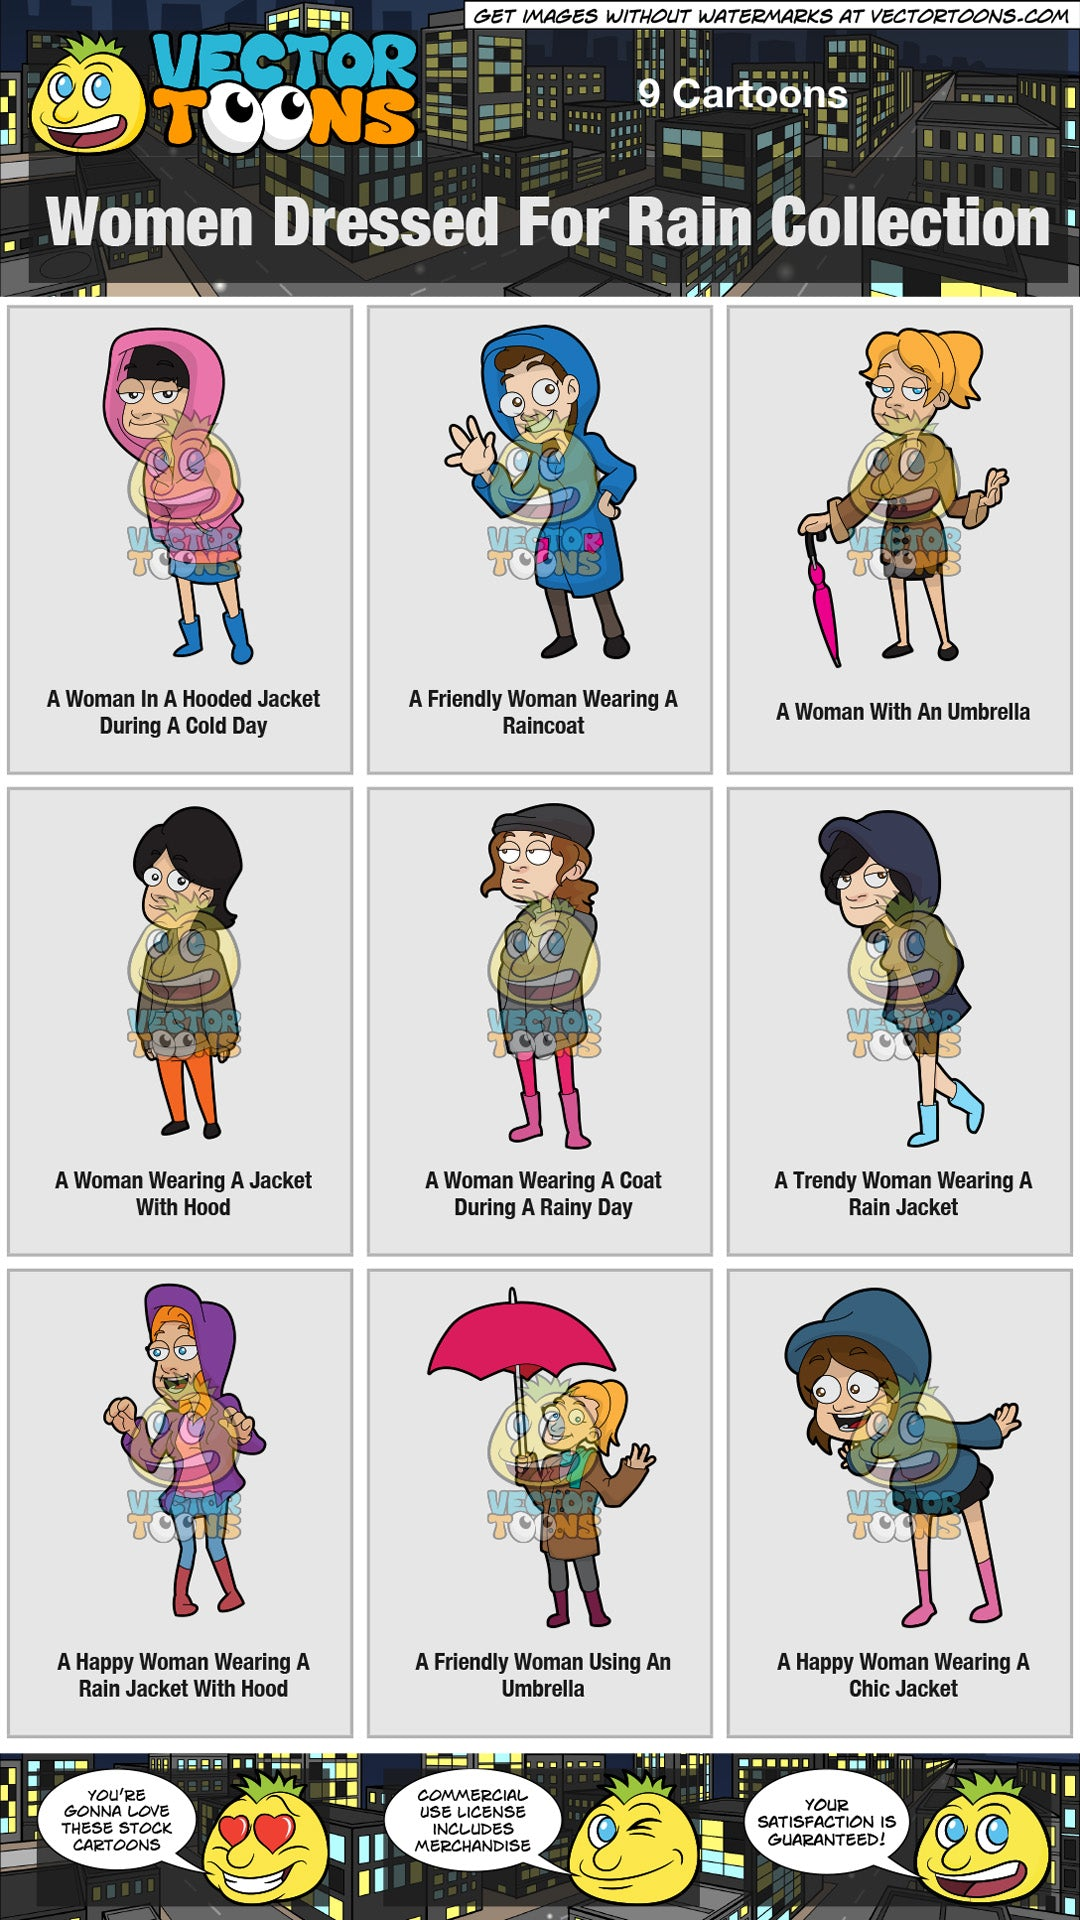 Women Dressed For Rain Collection